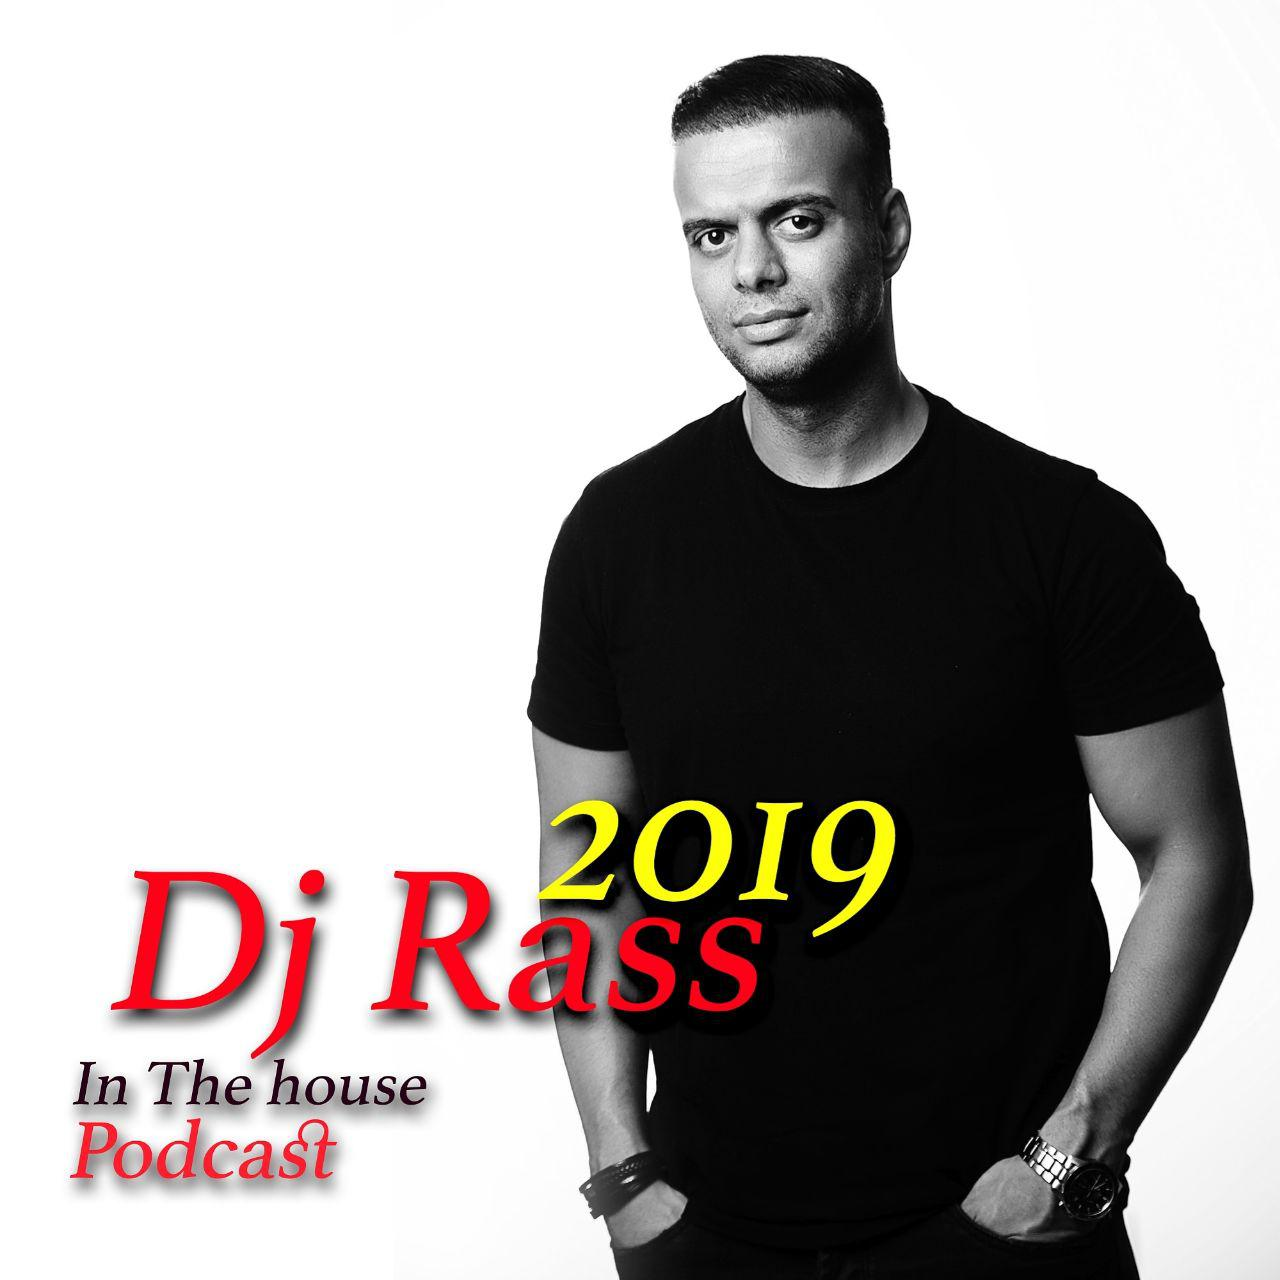 Dj Rass - In The House Podcast 2019 Music | آهنگ Dj Rass - In The House Podcast 2019